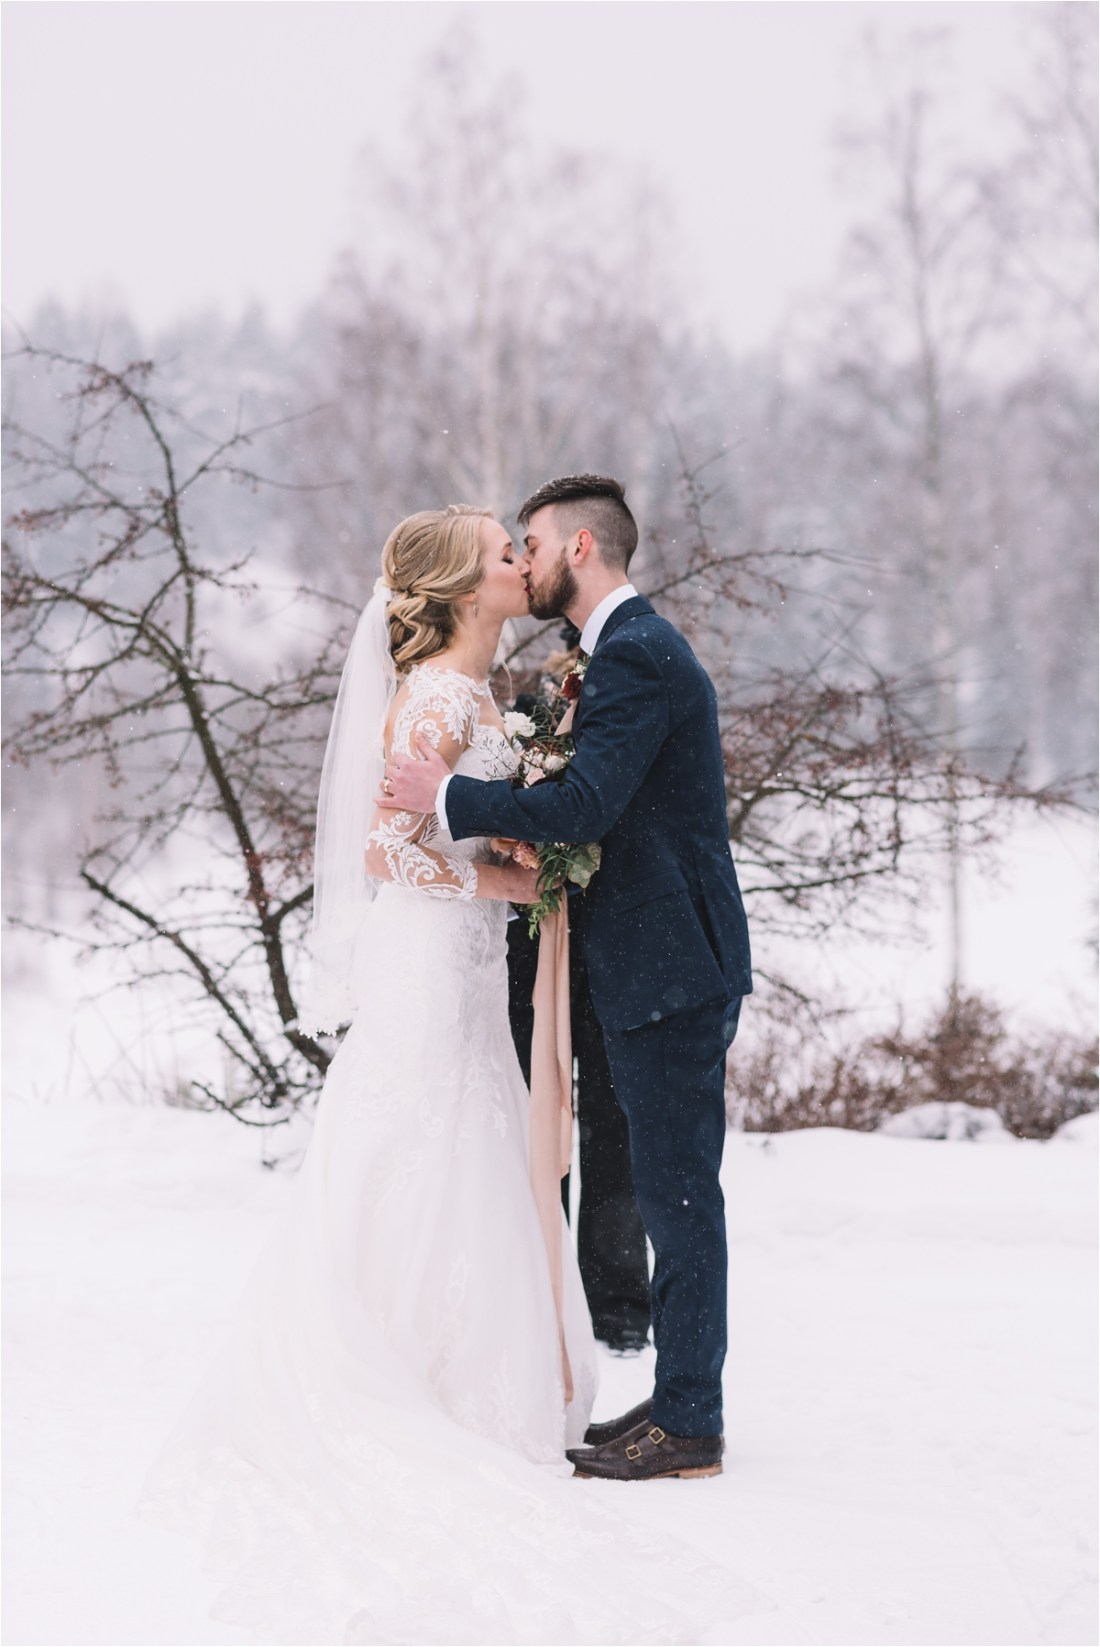 The first kiss after a winter wedding in the snow in Finland by Lucie Watson Photography